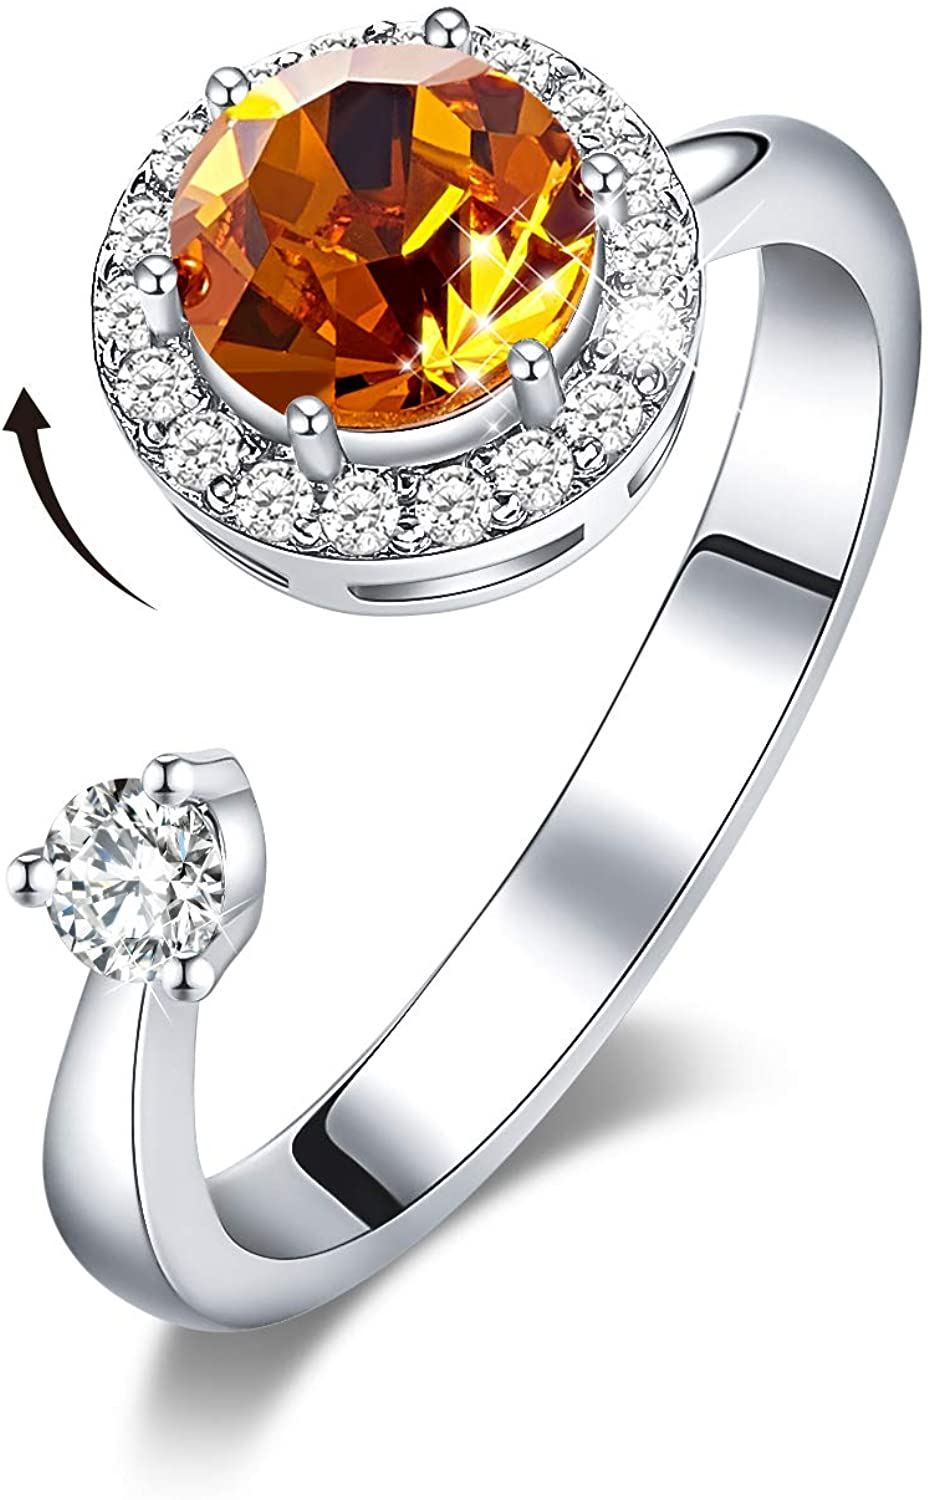 CDE Rotating Birthstone Rings for Girls Womens Birthday Mothers Day Jewelry Gifts Embellished with Crystals from Austria Ring 18K Rose Gold/Rhodium Plated Adjustable Size 7-9 for Girlfriend Wife